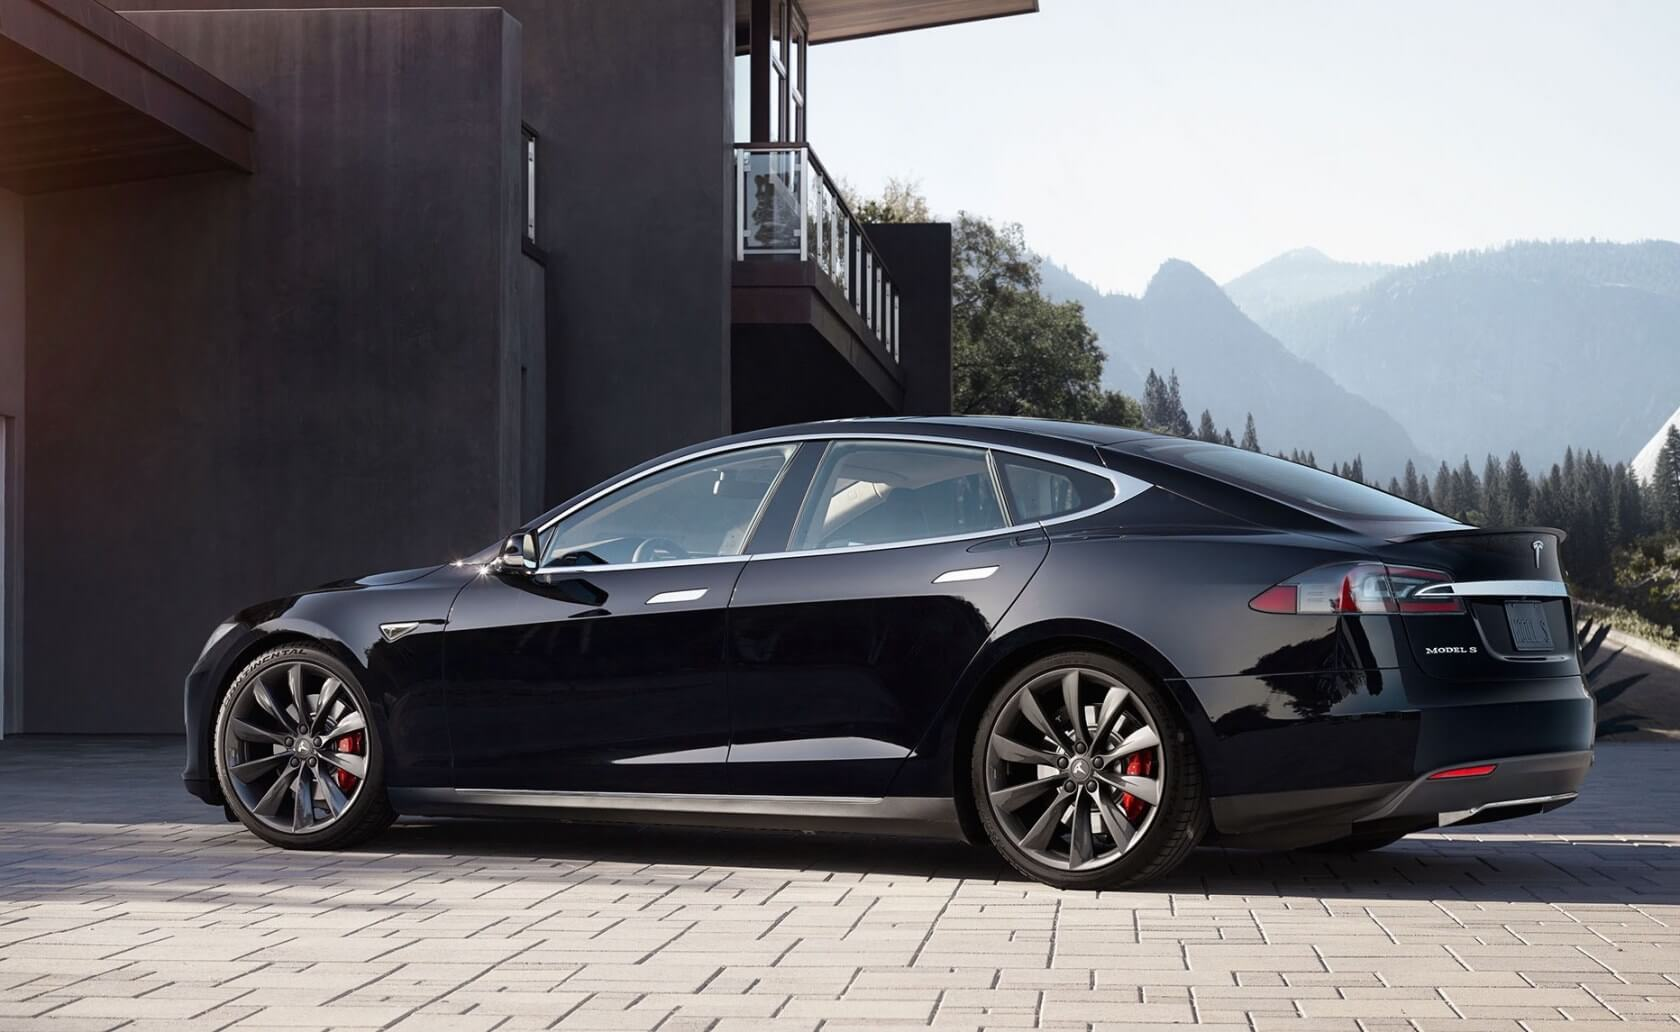 Tesla forms an unlikely partnership with GM and Nissan to preserve EV tax incentives